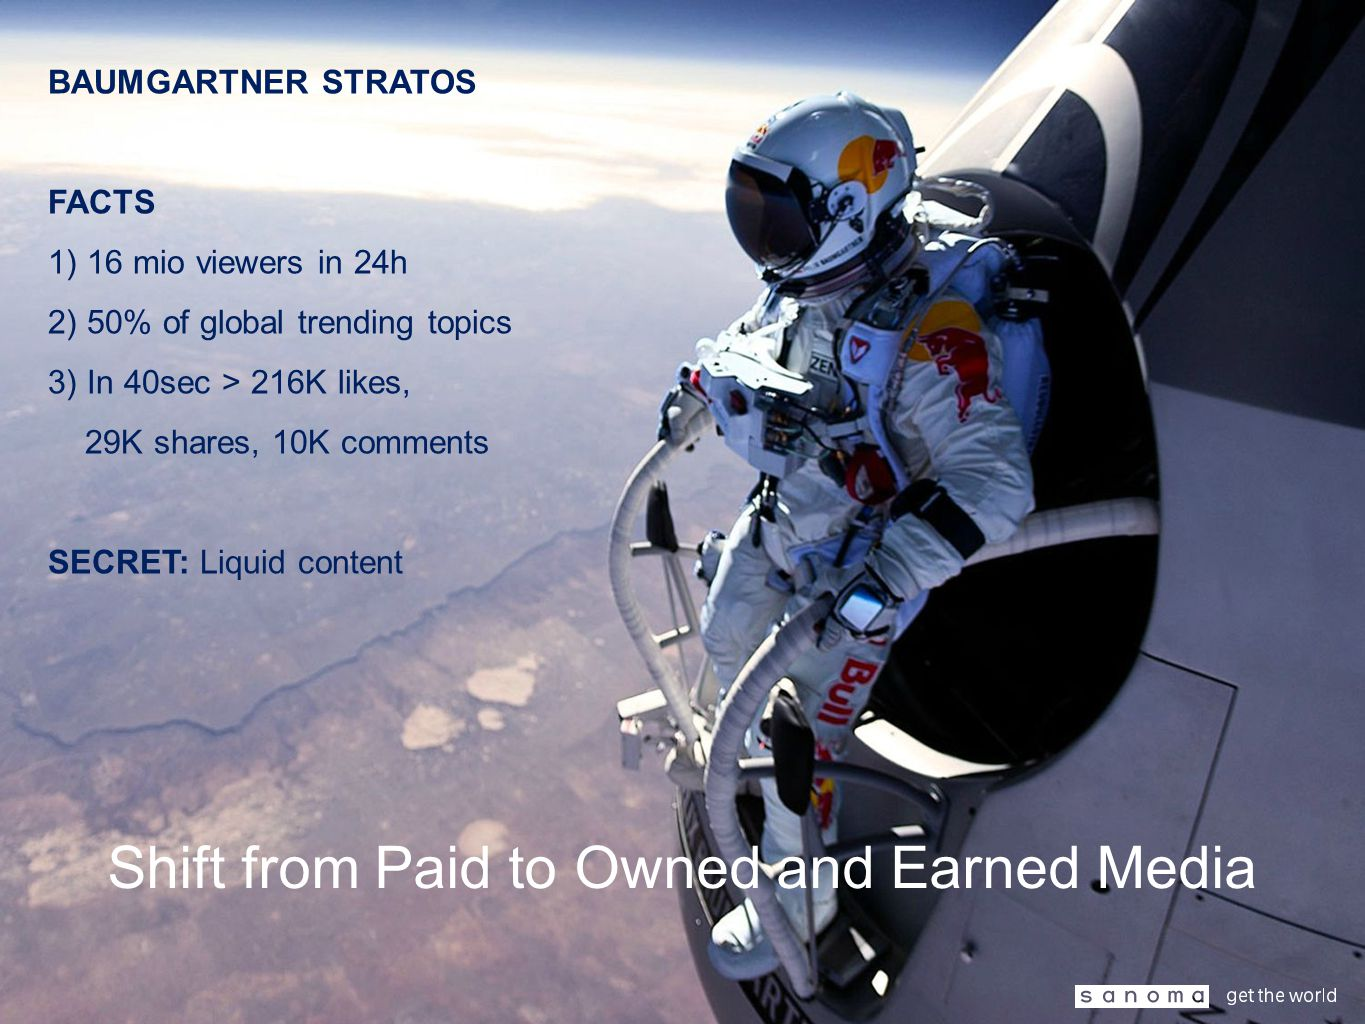 Shift from Paid to Owned and Earned Media BAUMGARTNER STRATOS FACTS 1) 16 mio viewers in 24h 2) 50% of global trending topics 3) In 40sec > 216K likes, 29K shares, 10K comments SECRET: Liquid content